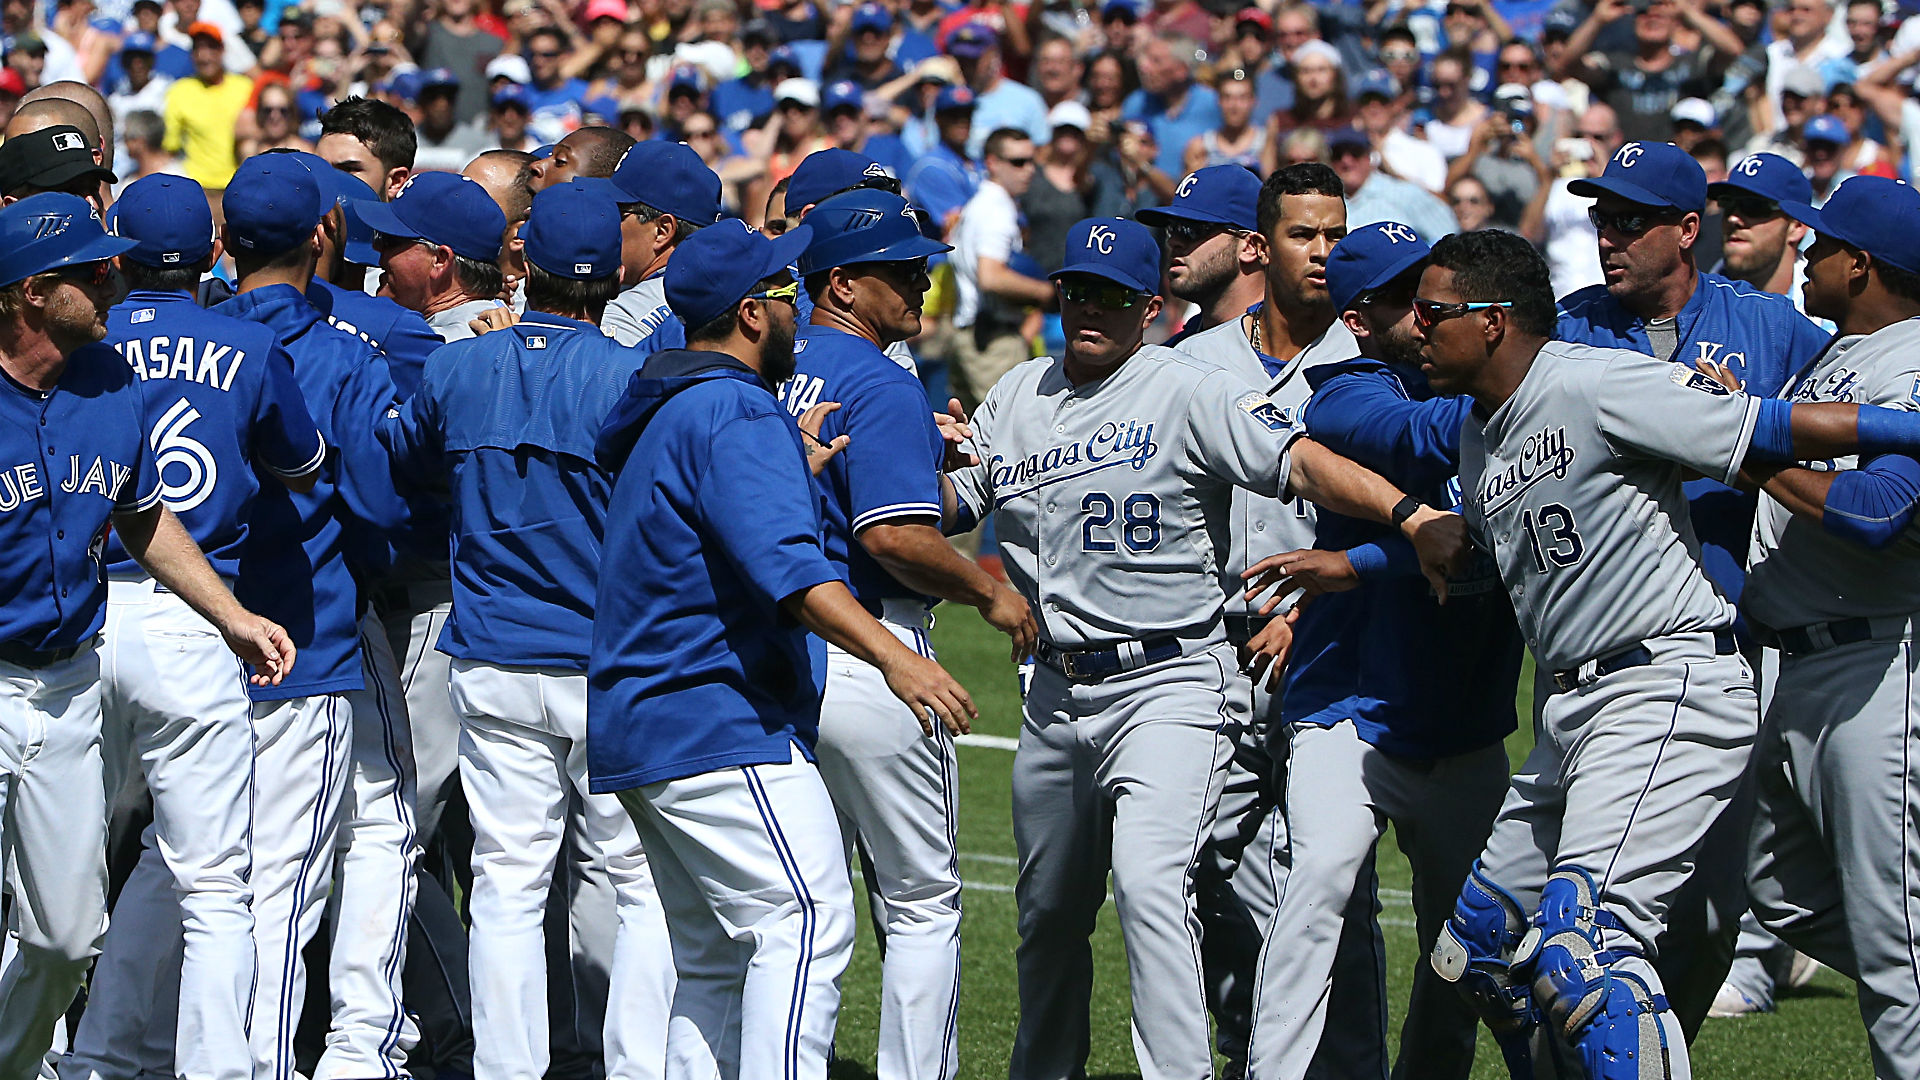 Cleared benches lead to ejections, high tension as Blue Jays defeat Royals